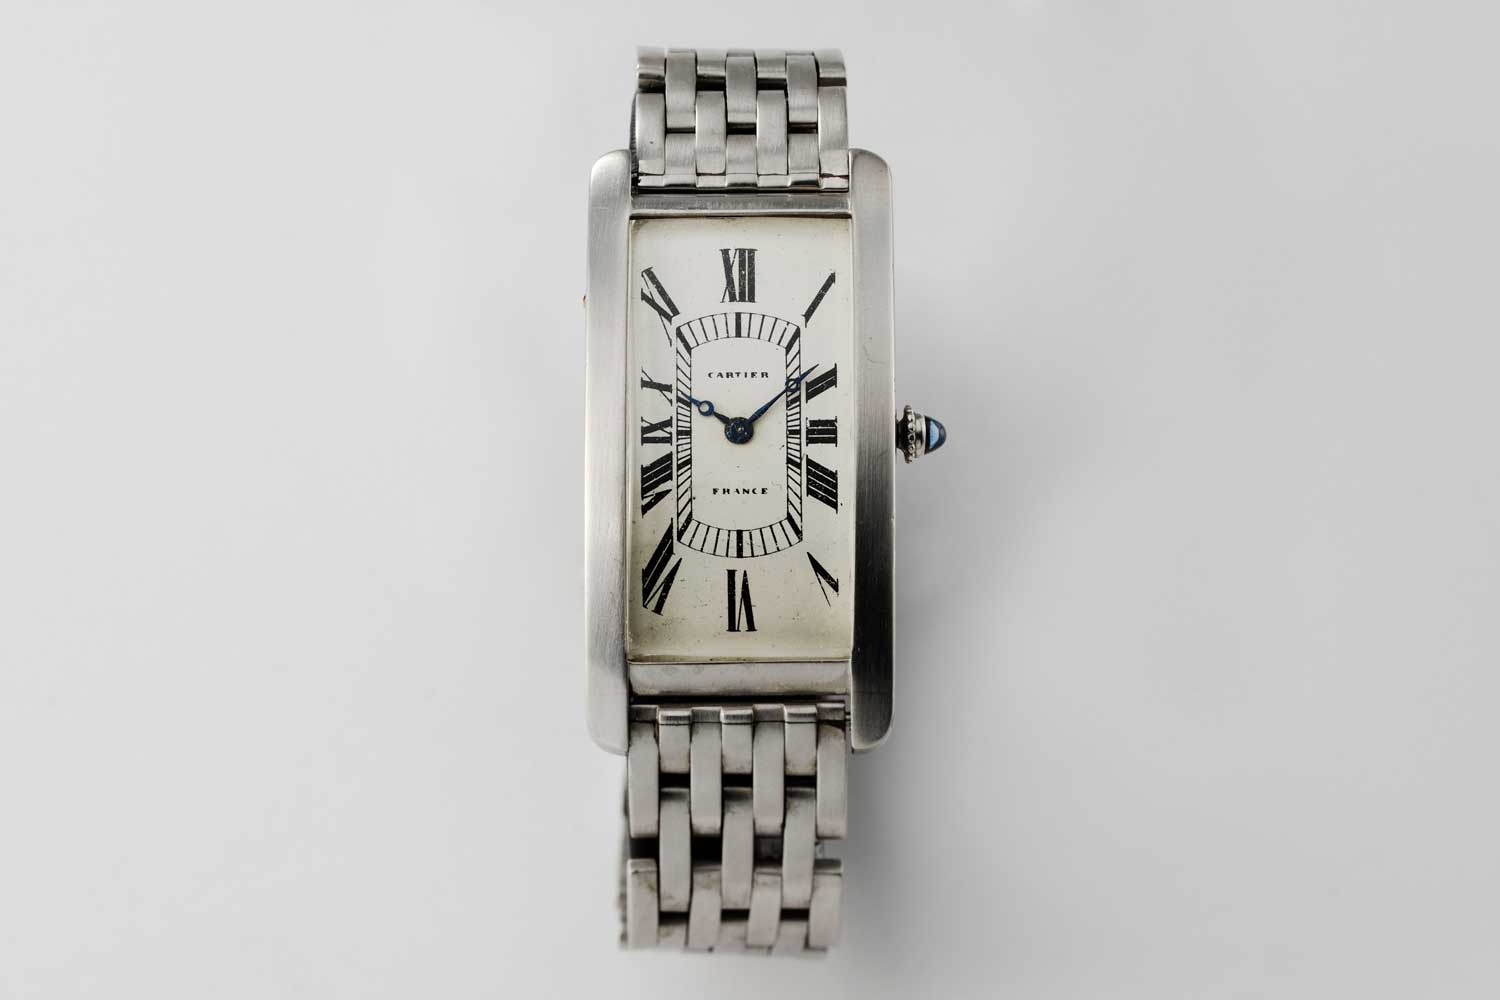 1928 Platinum Cartier Tank Cintrée with original 7-link platinum bracelet; this particular example is from the private collection of Auro Montanari (©Revolution)